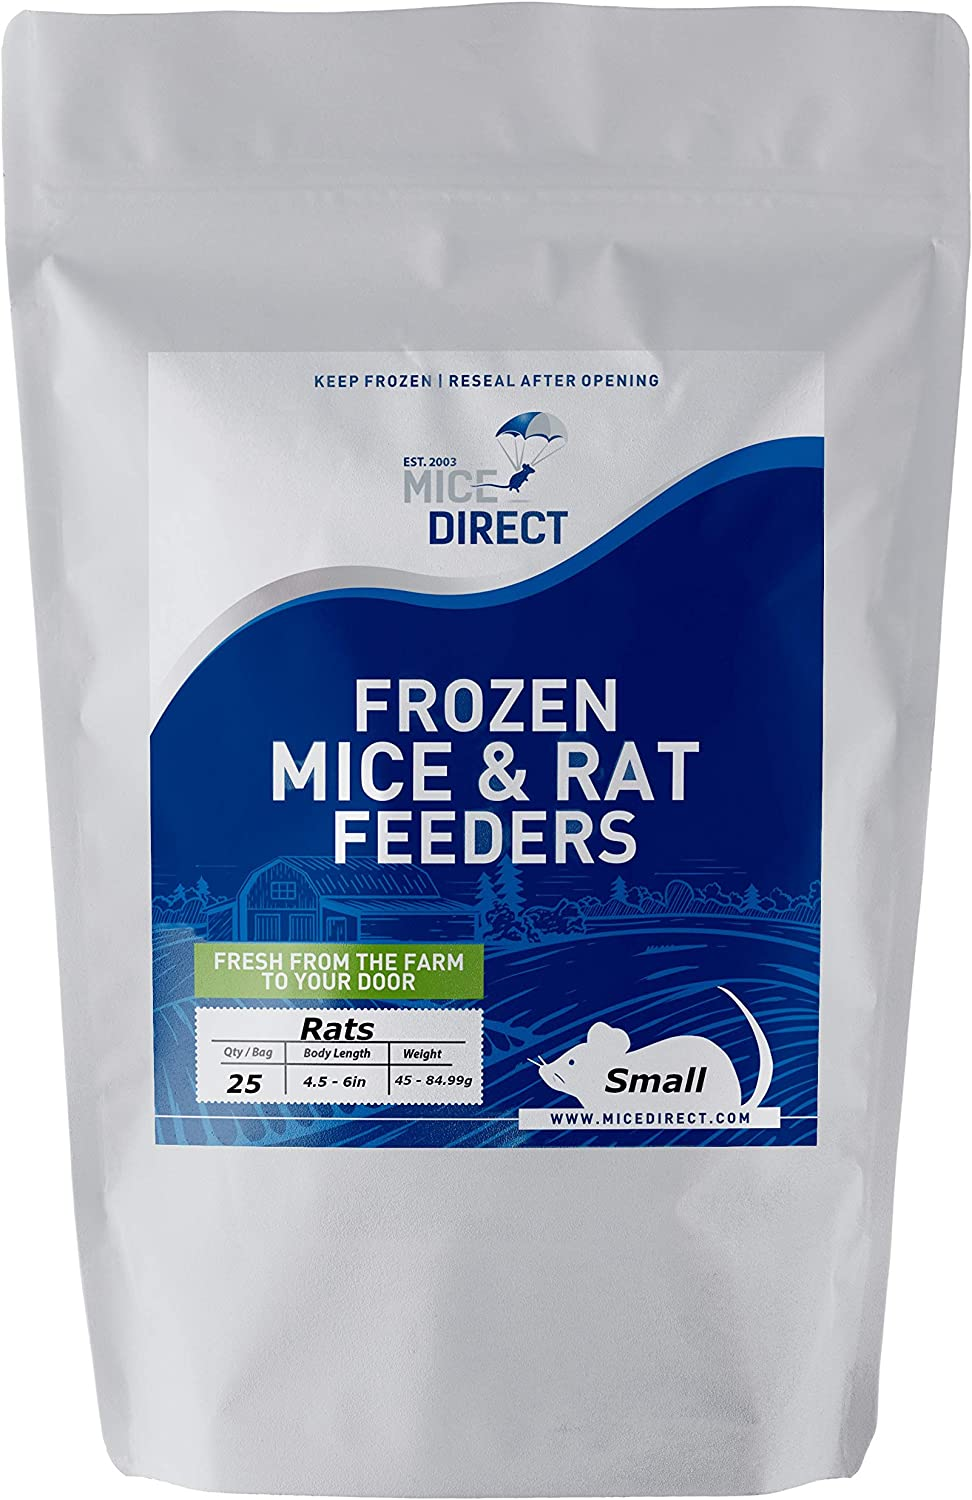 MiceDirect 25 Small Rats: Pack of Frozen Small Feeder Rats - Food for Corn Snakes, Ball Pythons, Lizards and Other Pet Reptiles - Freshest Snake Feed Supplies